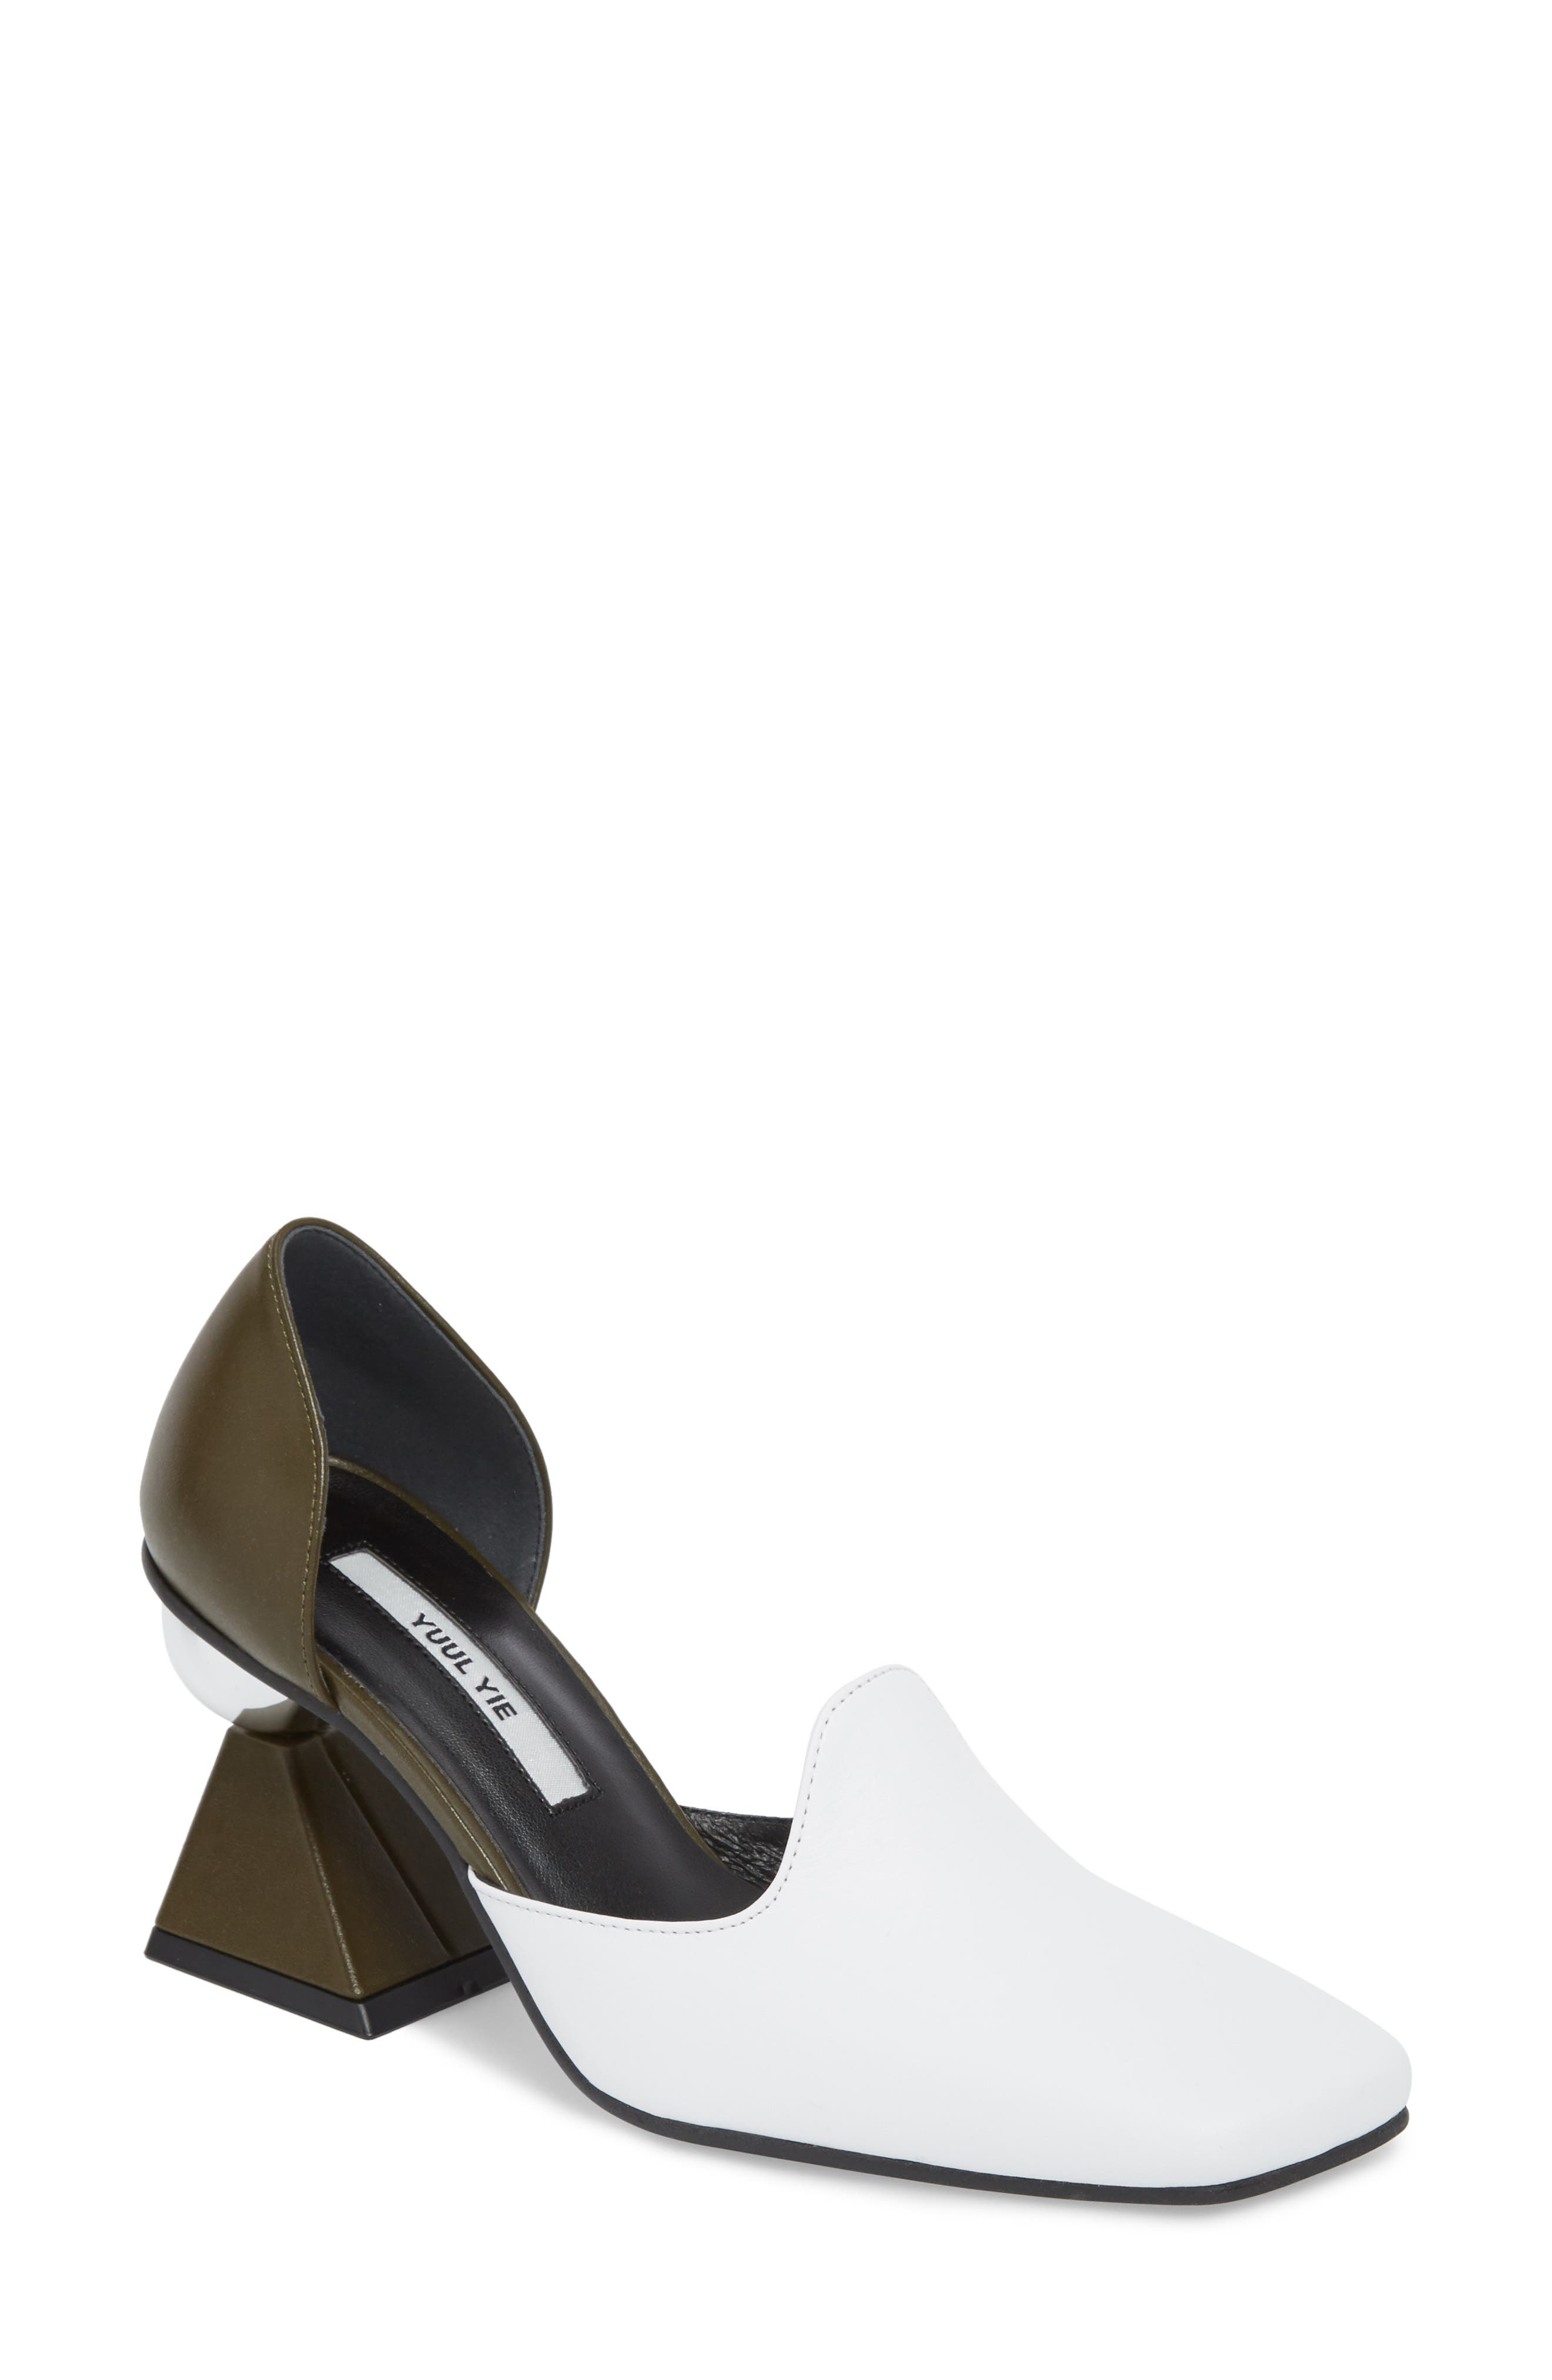 Statement Heel d'Orsay Pump,                             Main thumbnail 1, color,                             White/ Olive Green